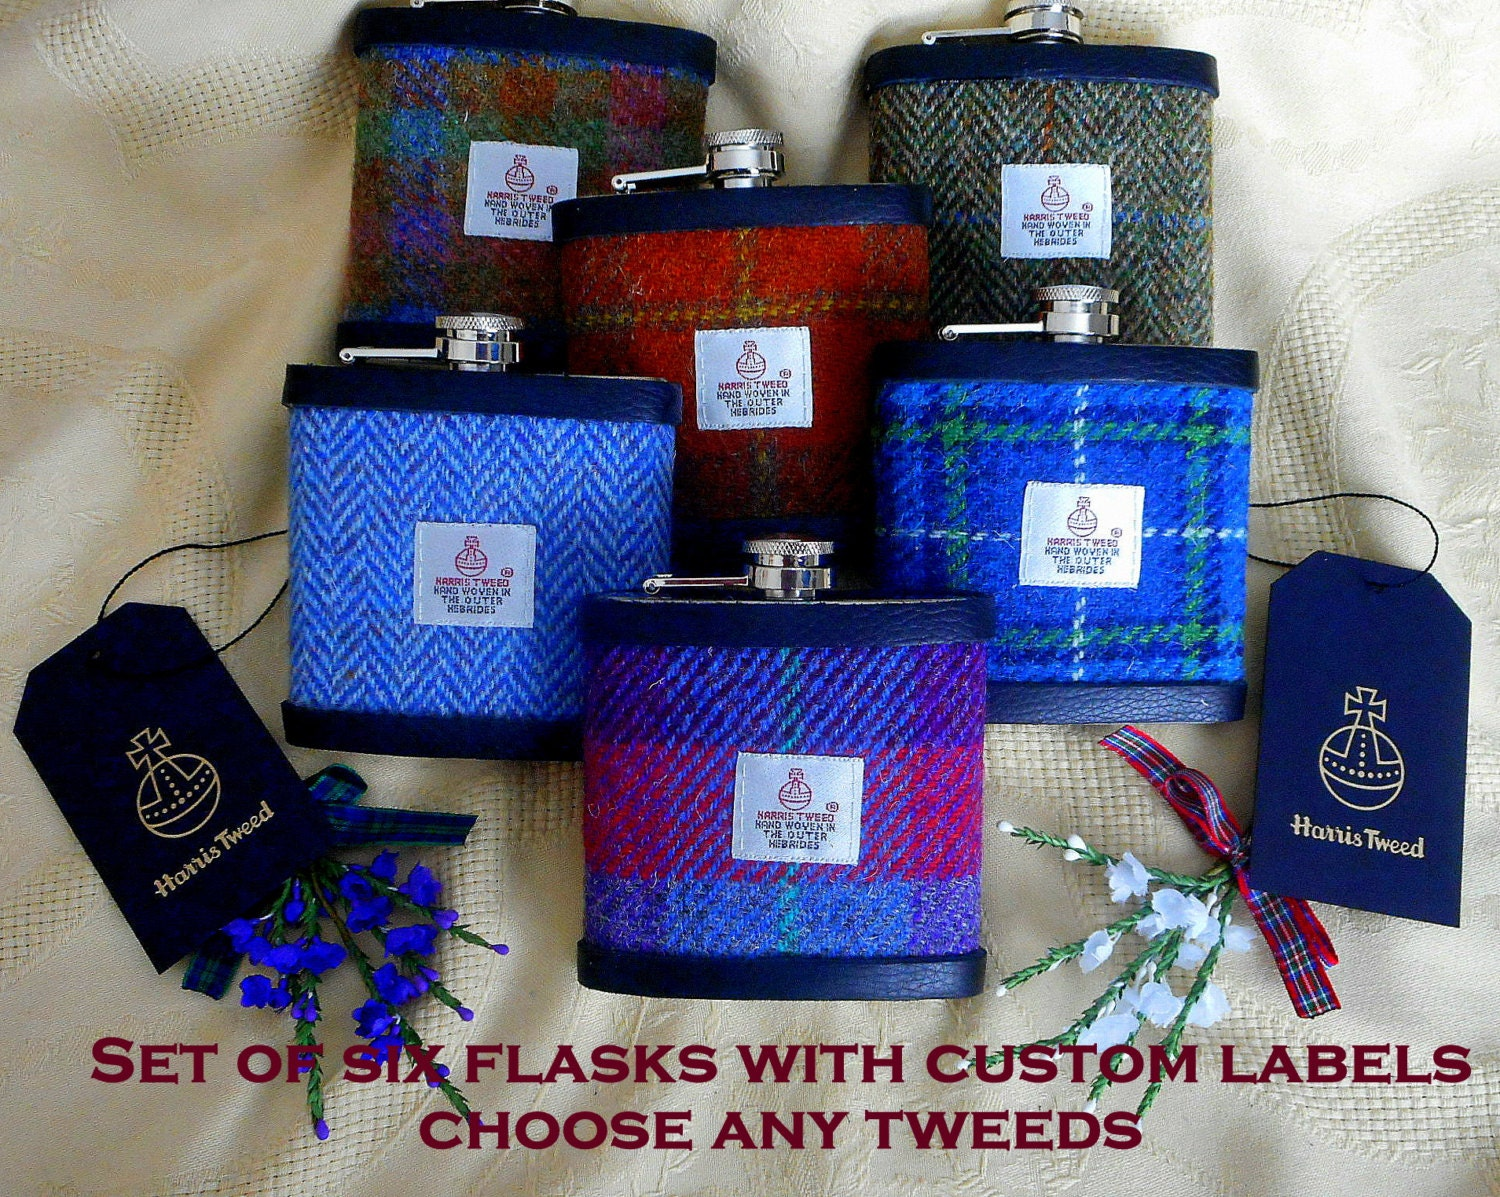 Scottish Wedding Gifts: Groomsmens Scottish Wedding Gifts Harris Tweed Hip Flasks Set